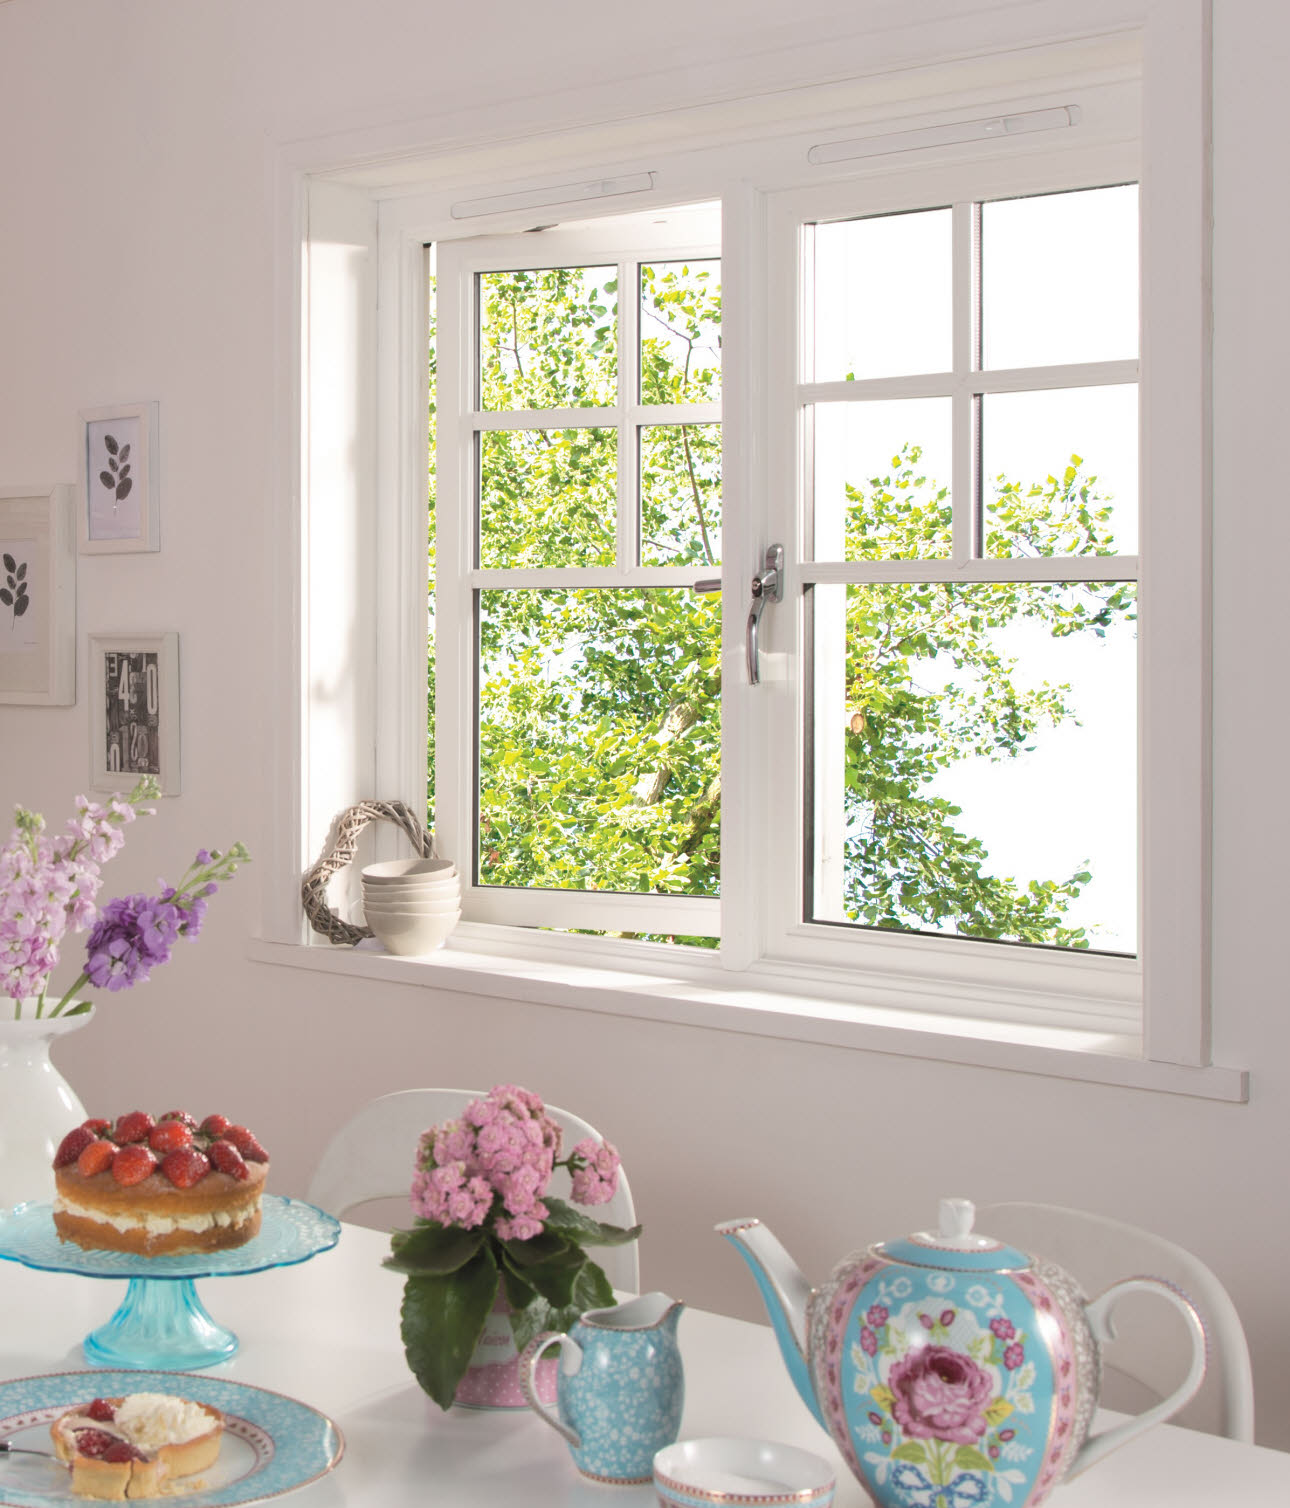 JELD-WEN Standard Victorian Timber Window